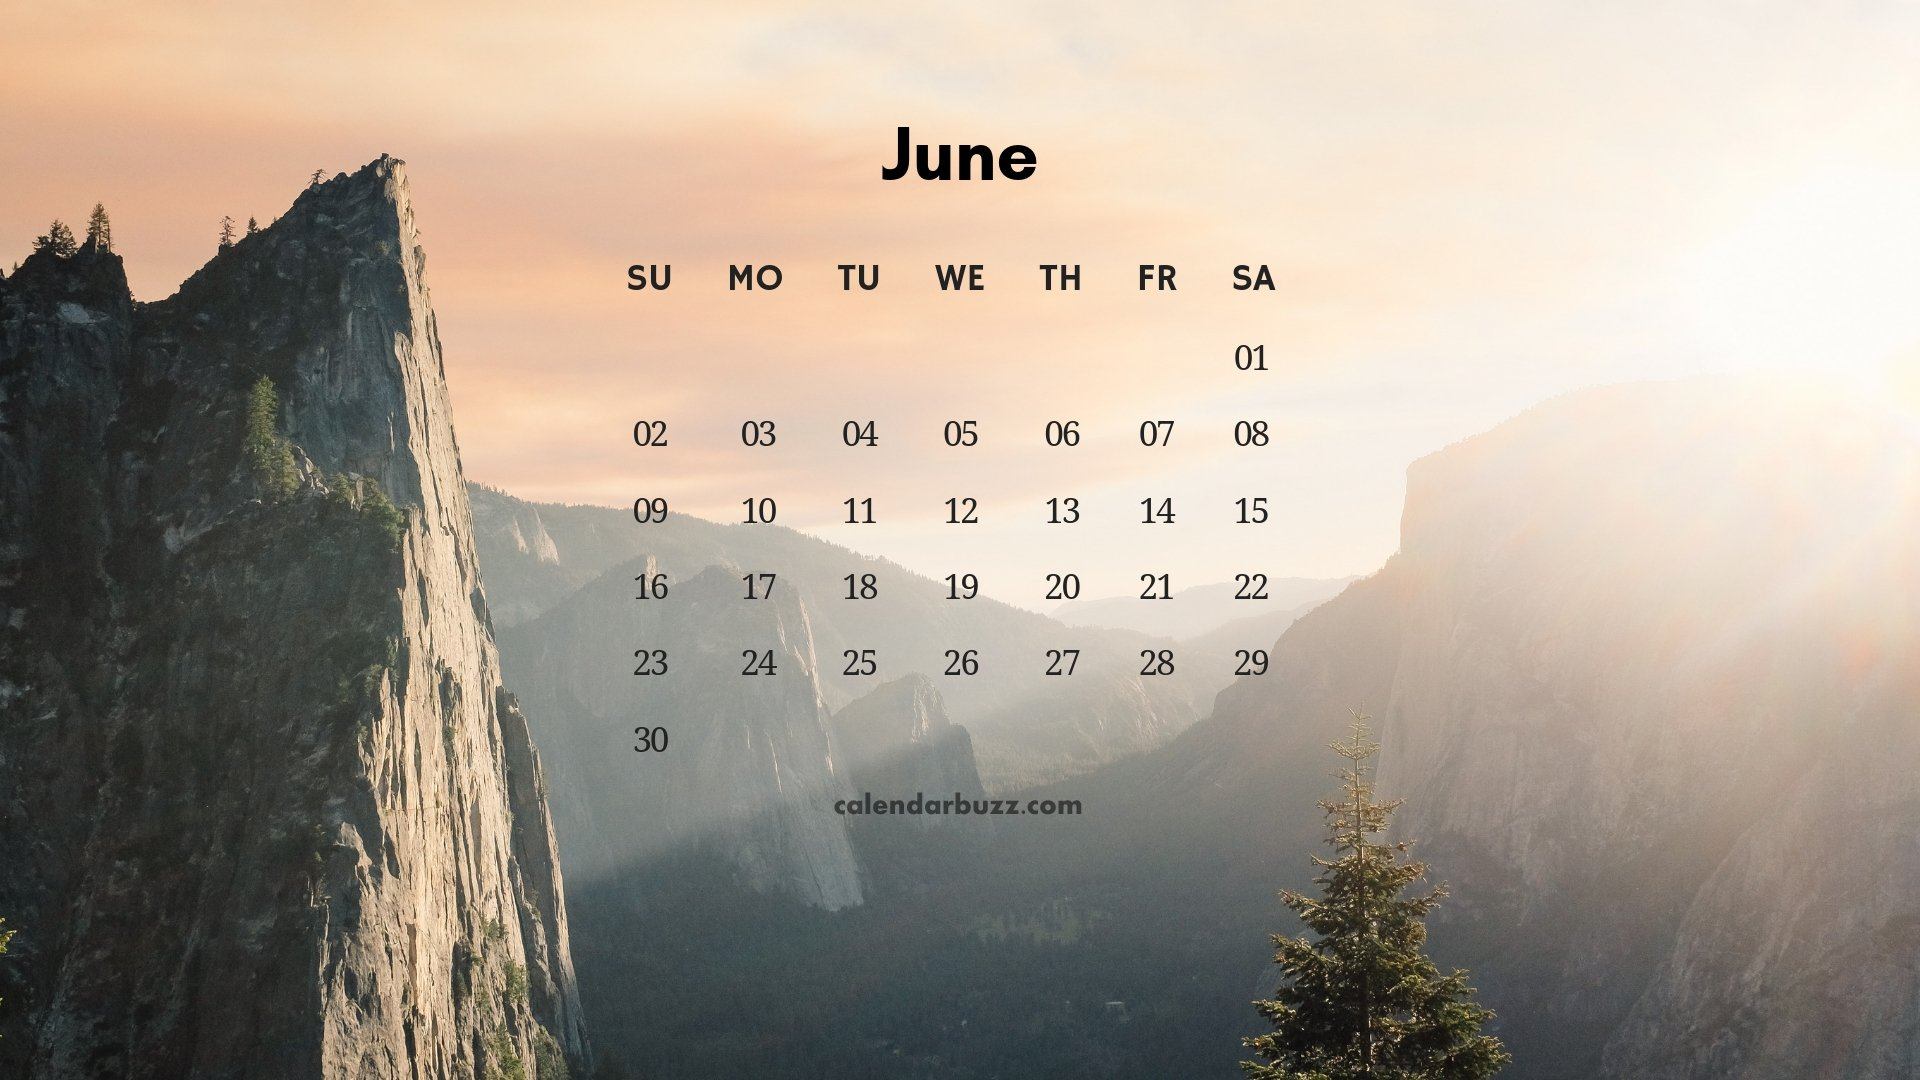 June 2019 Calendar HD Wallpapers and Background Images YL Computing 1920x1080